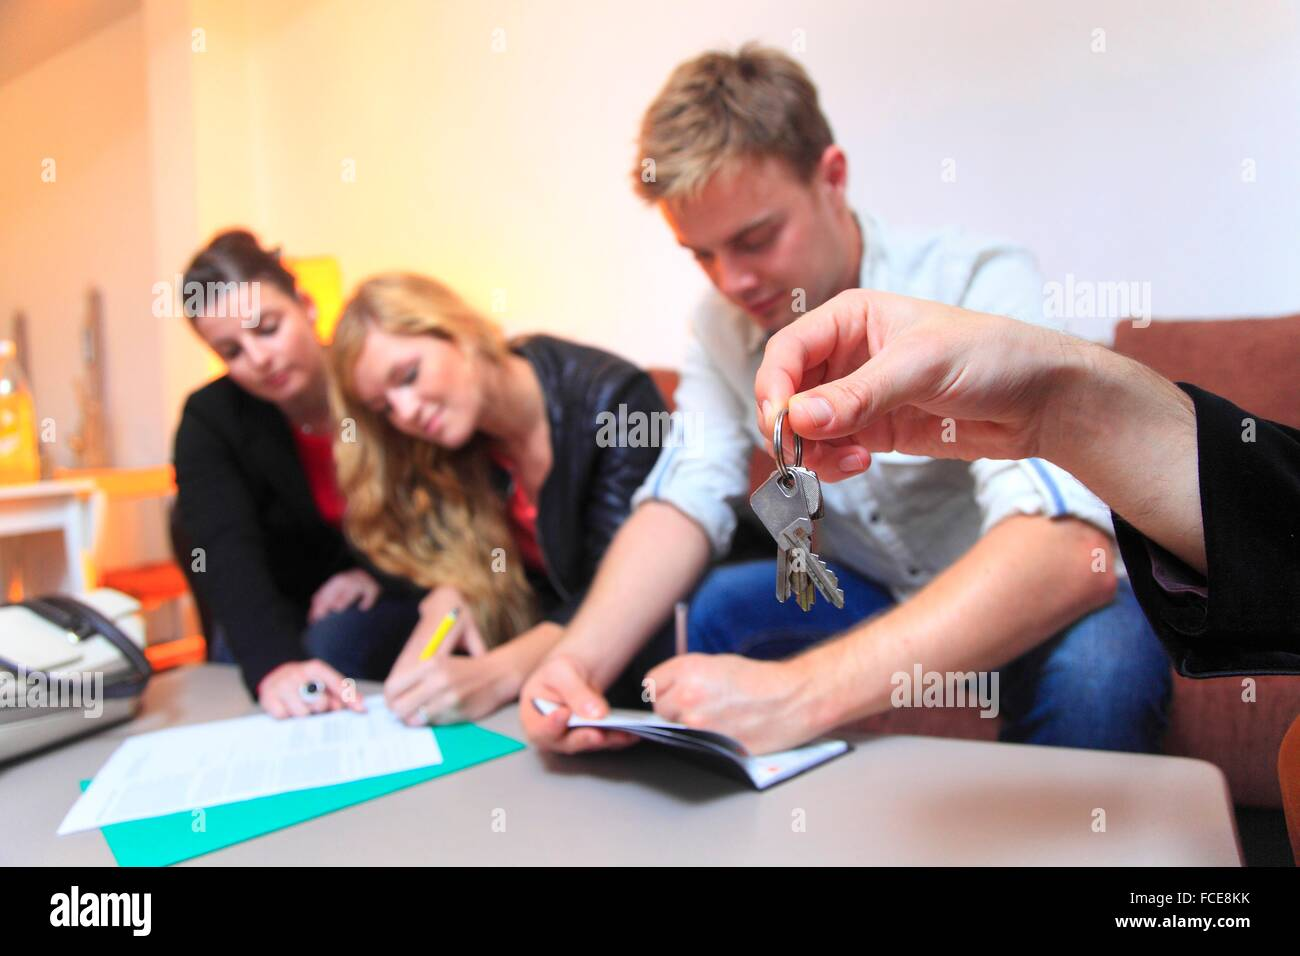 France, couple signing leasing agreement of apartment - Stock Image